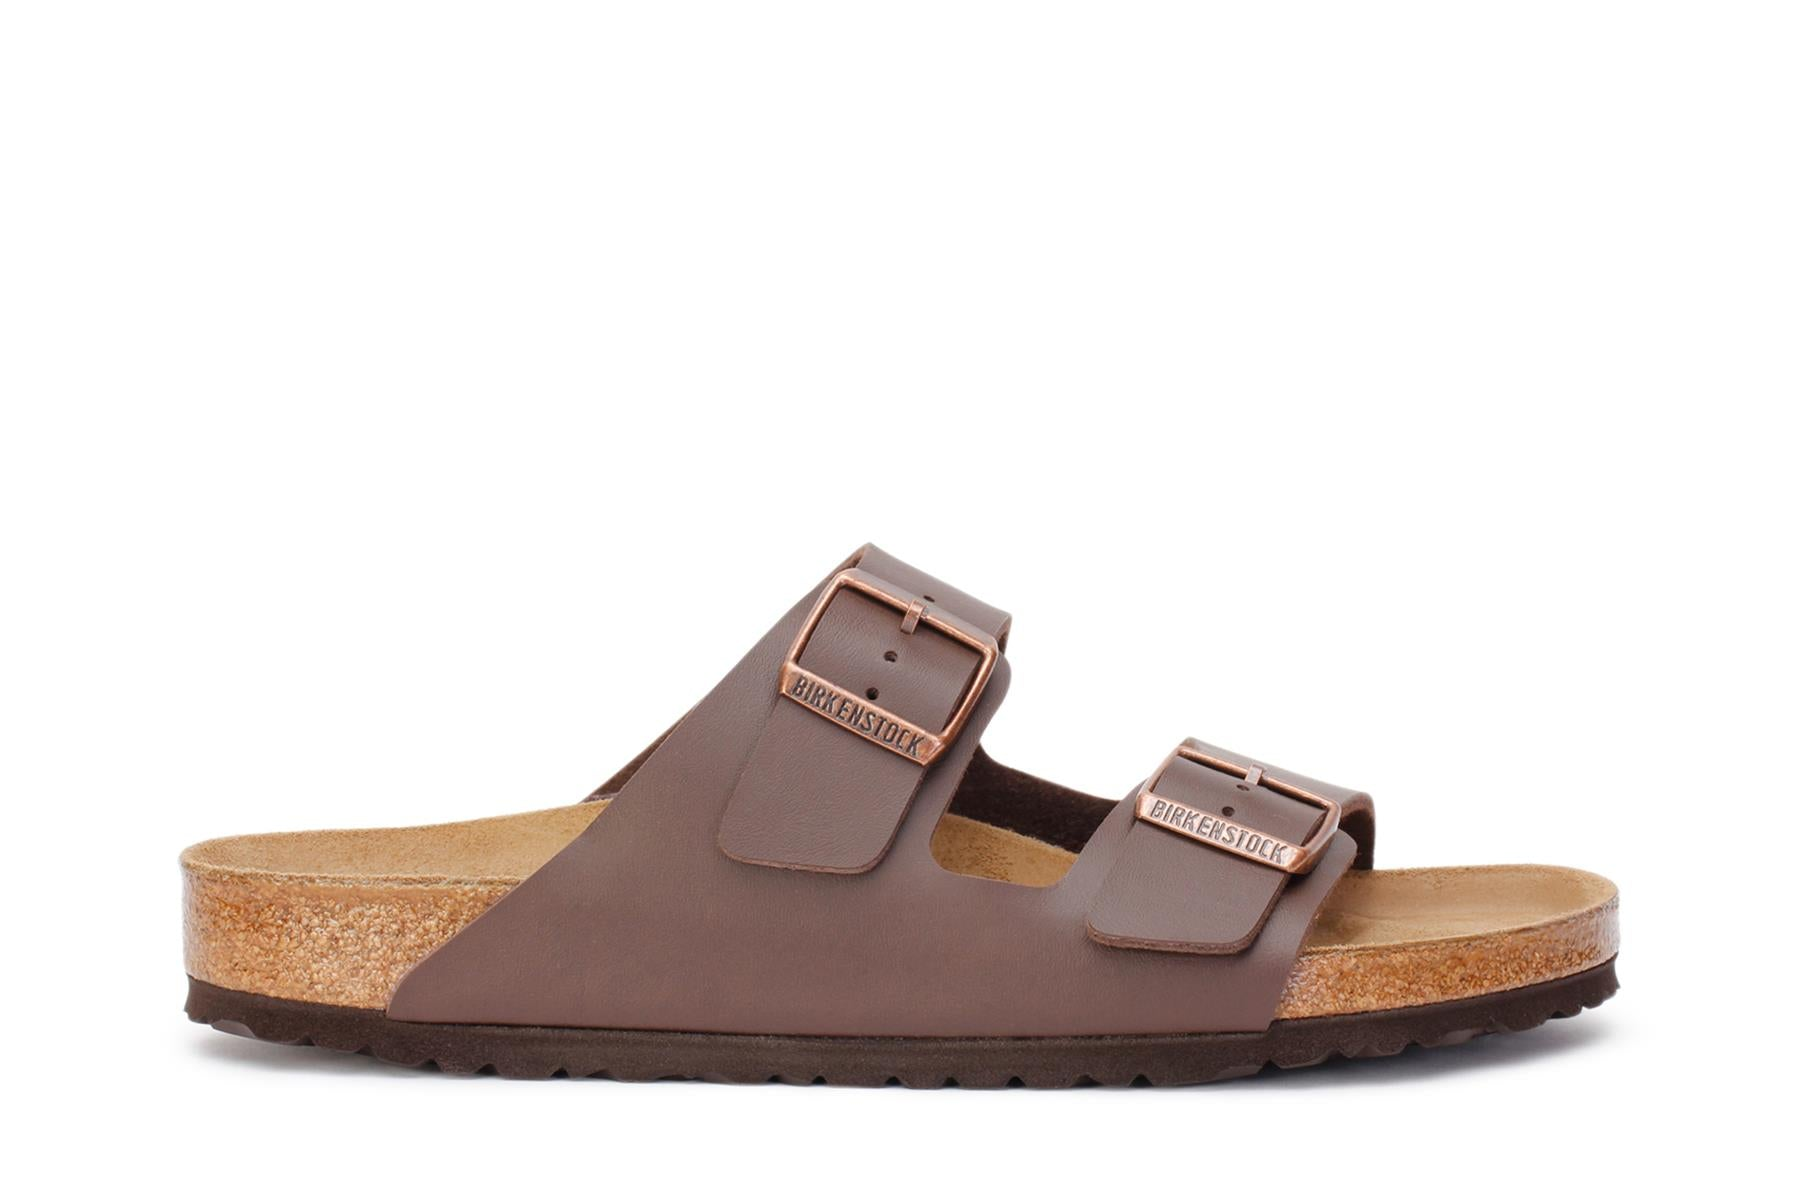 birkenstock-mens-slide-sandals-arizona-bs-dark-brown-birko-flor-51701-main